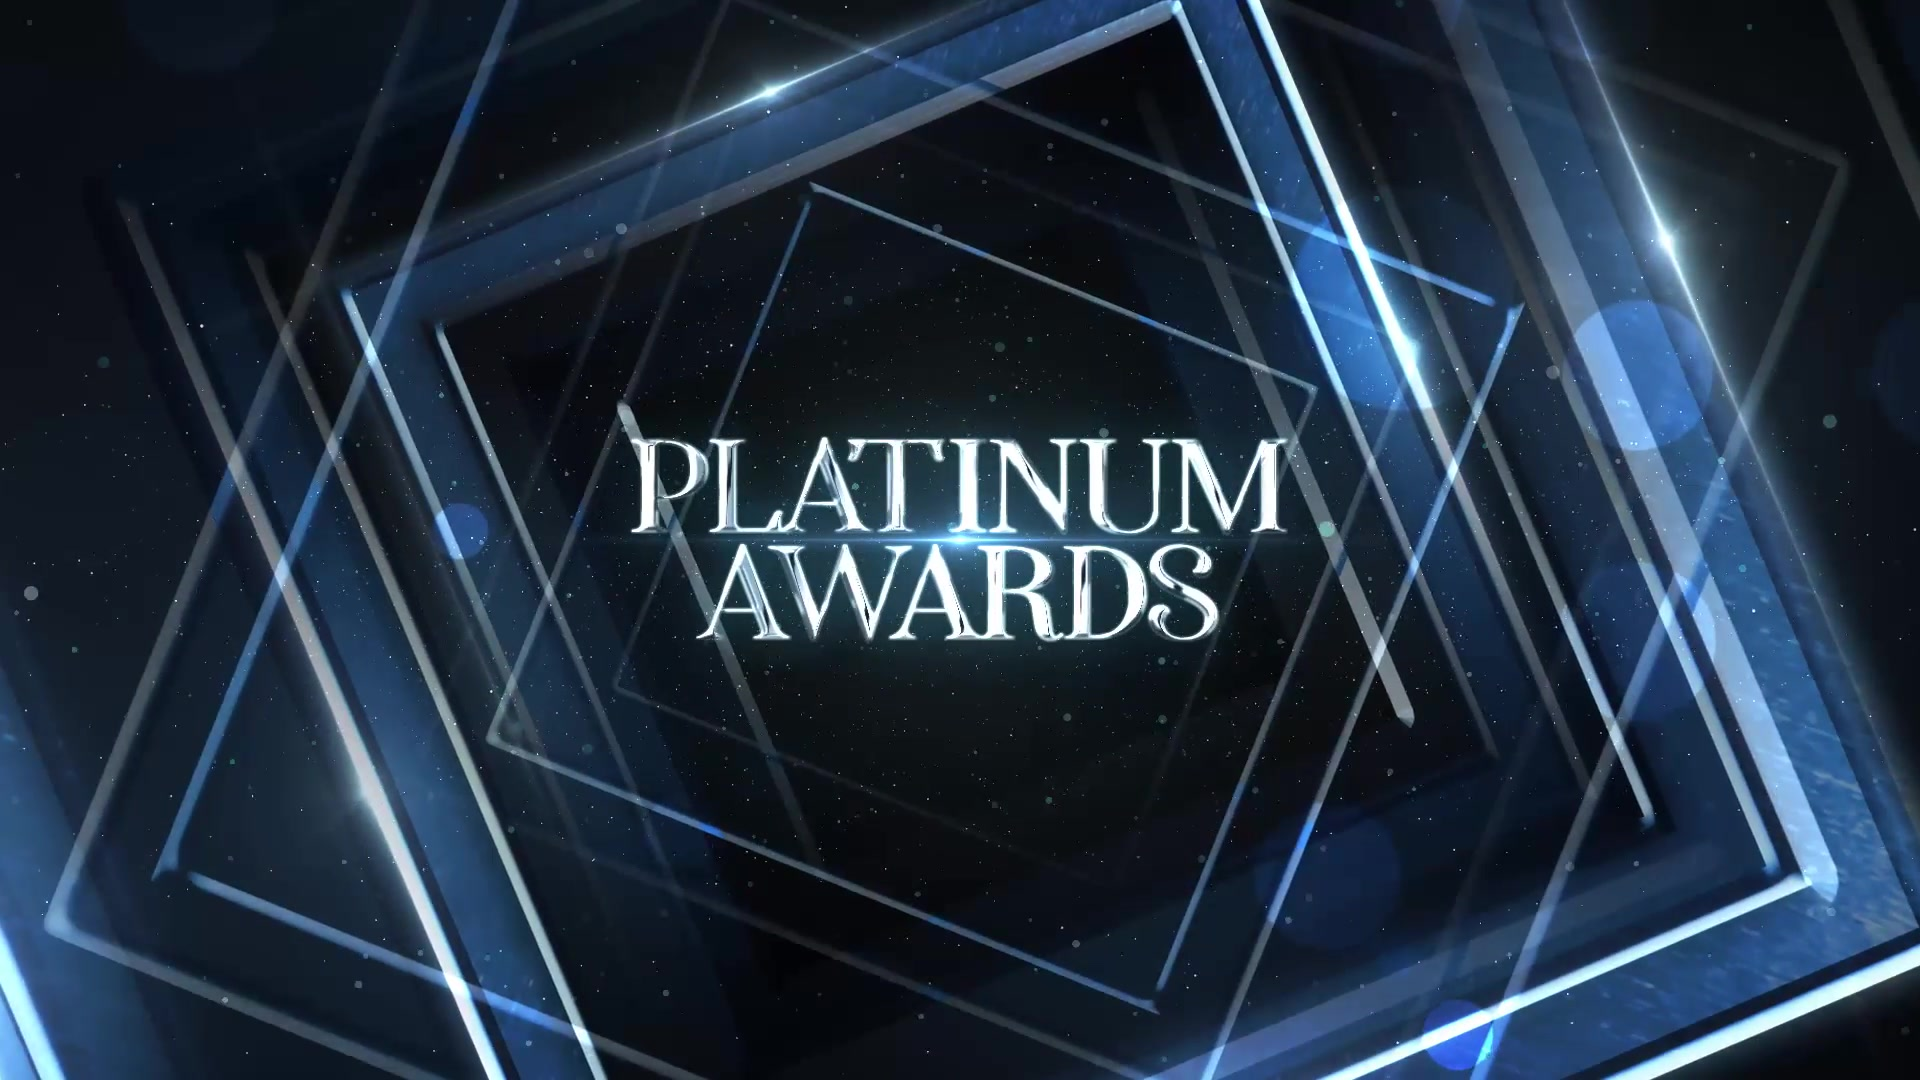 Platinum Awards Videohive 24999798 After Effects Image 13